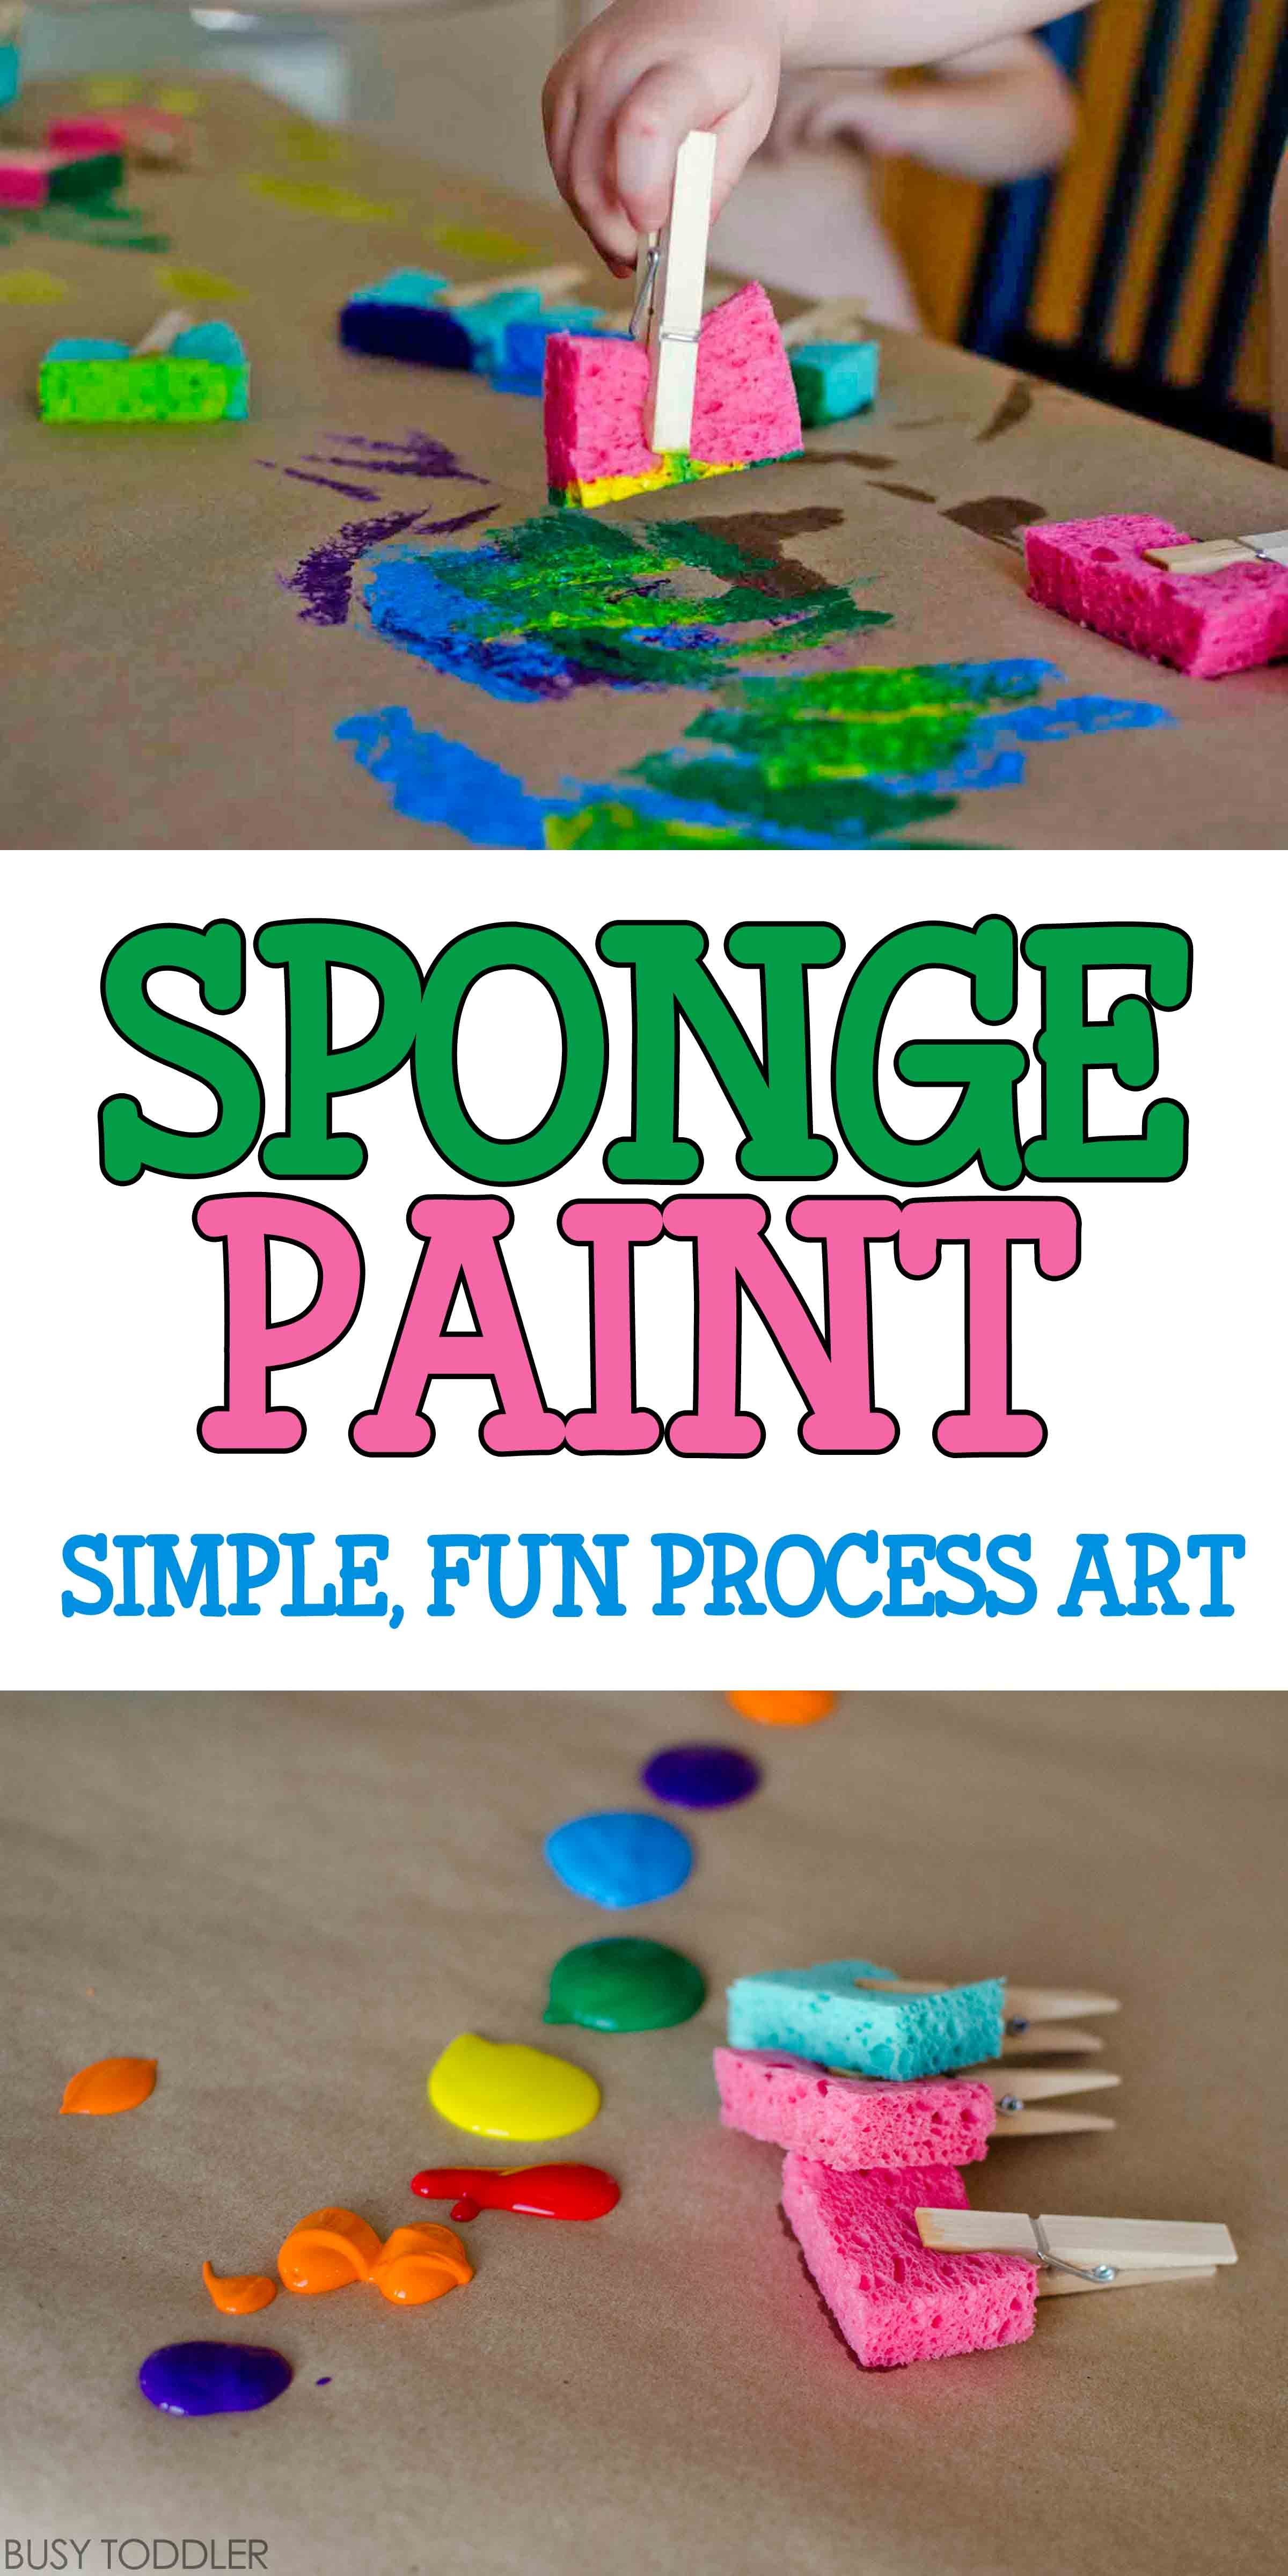 Sponge Painting Process Art Busy Toddler Art Activities